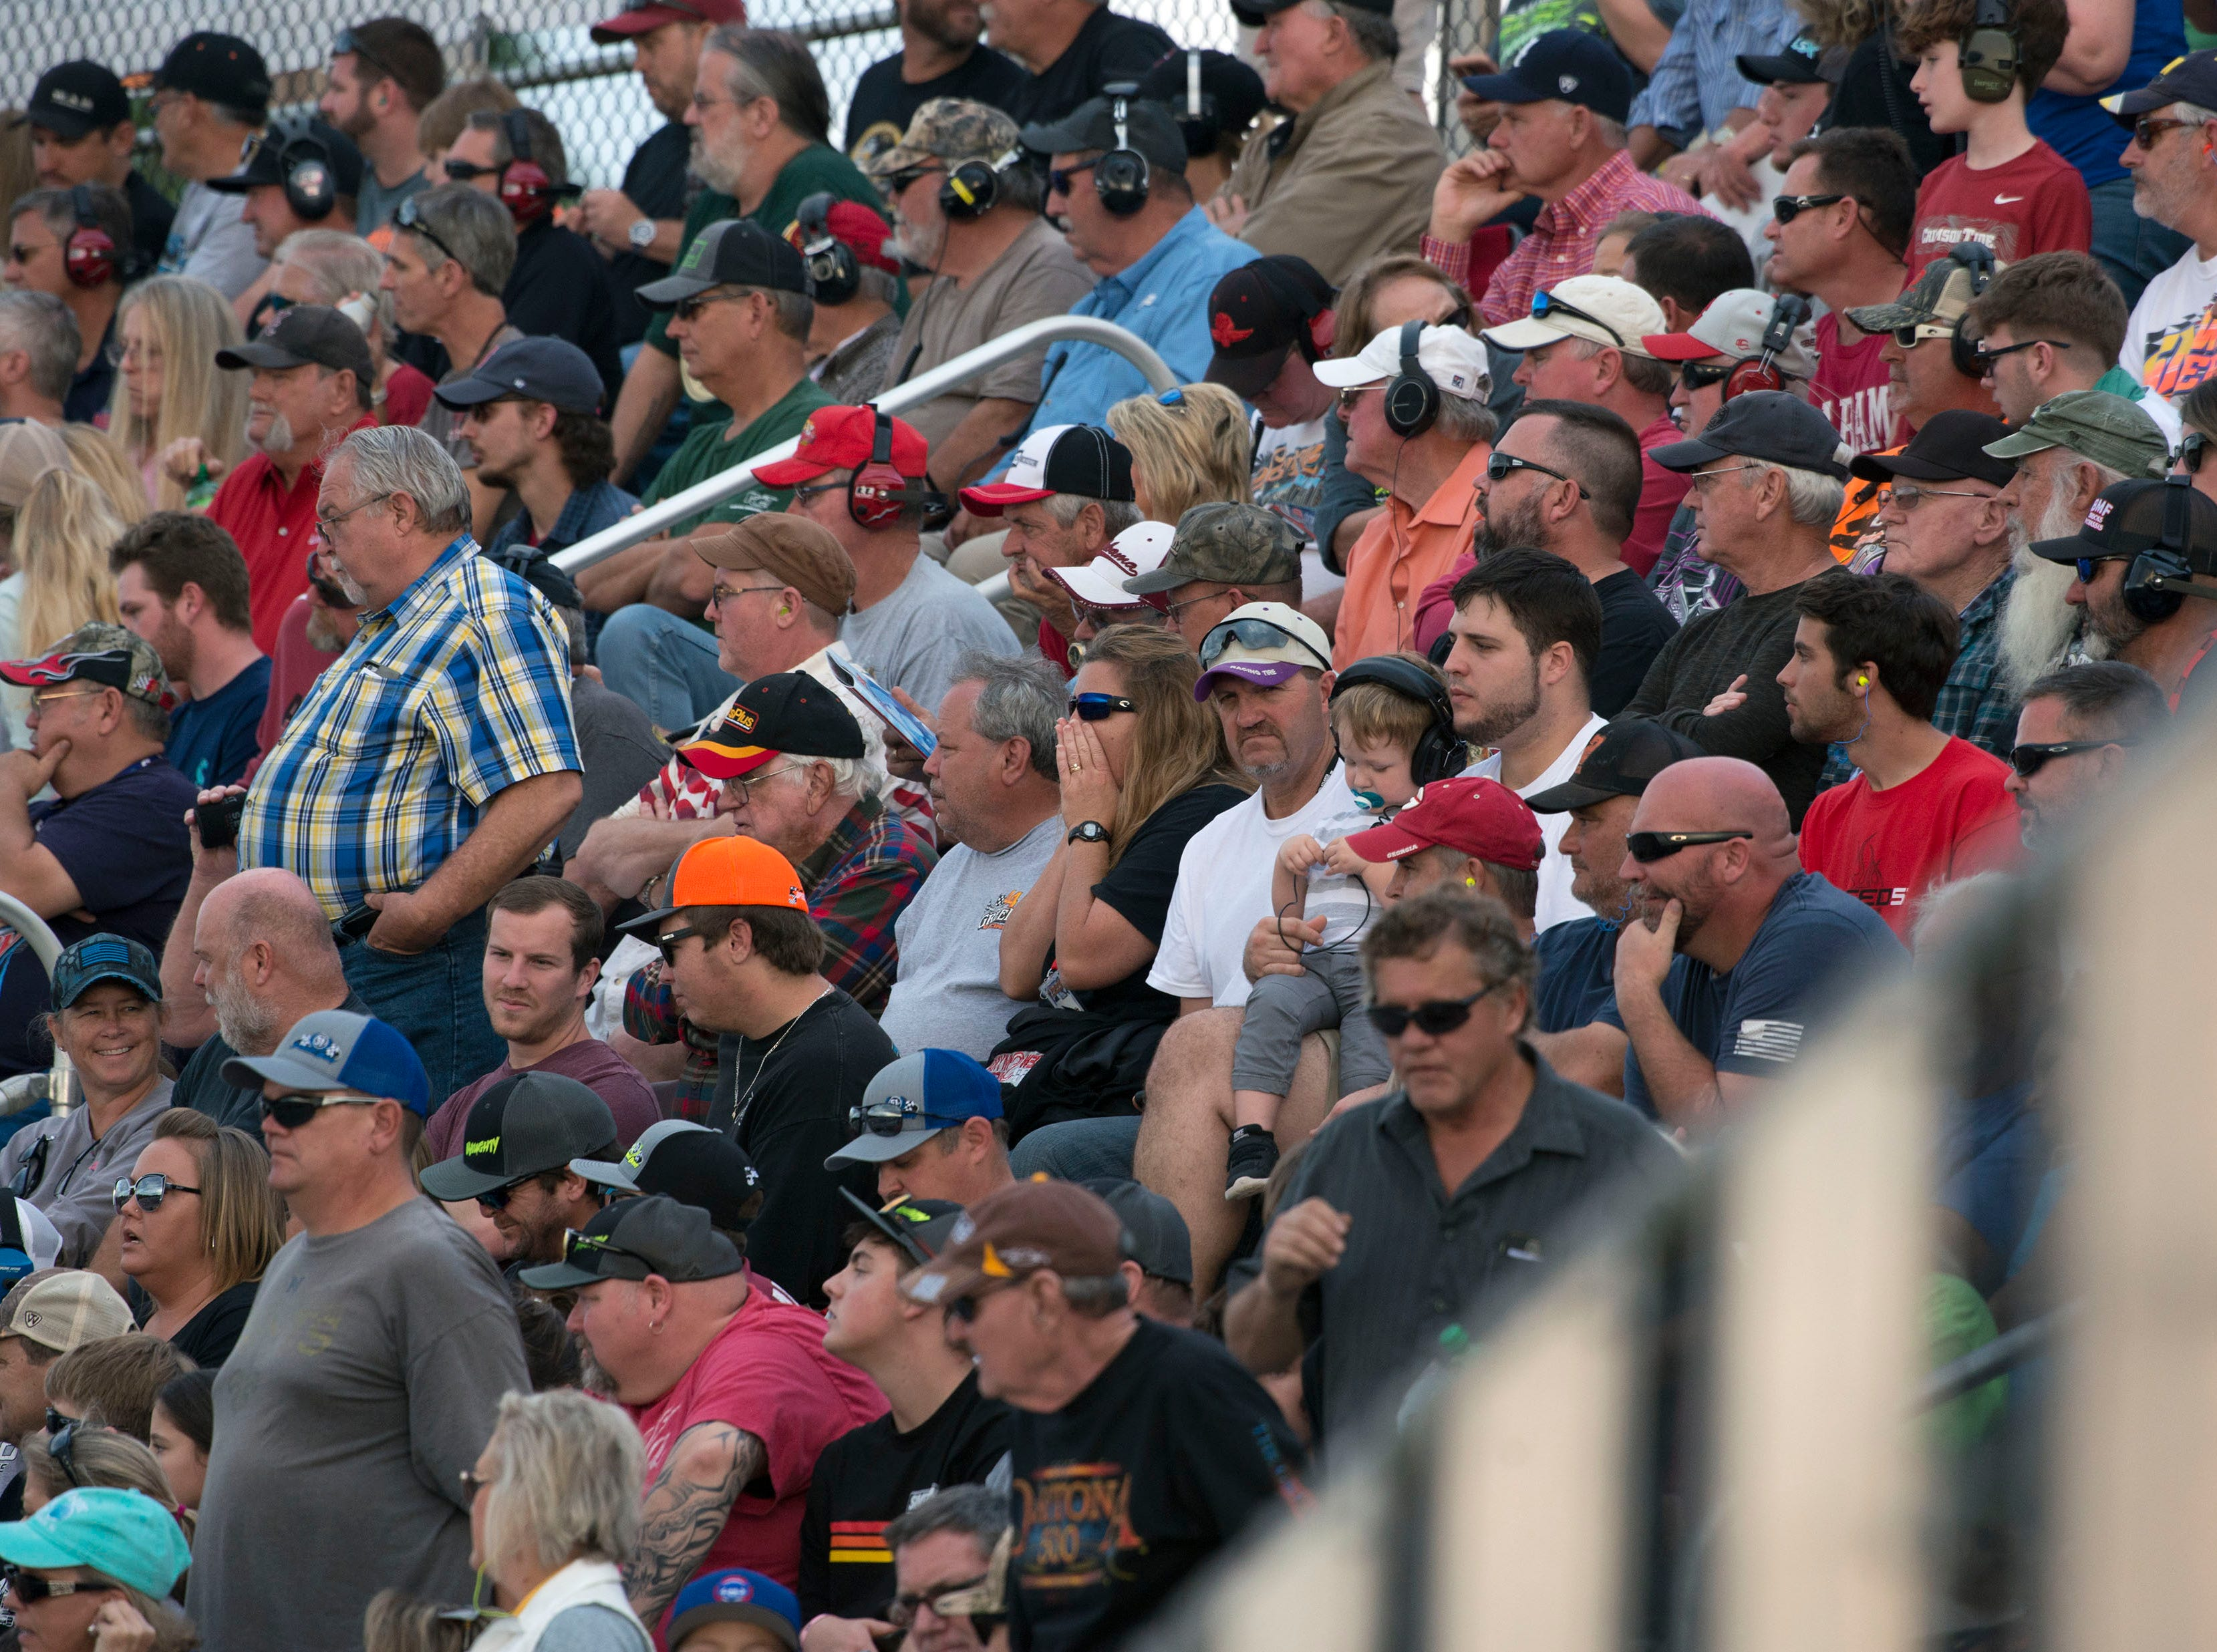 The crowd checks out the action Sunday, December 2, 2018 during the 51st annual Snowball Derby at Five Flags Speedway.